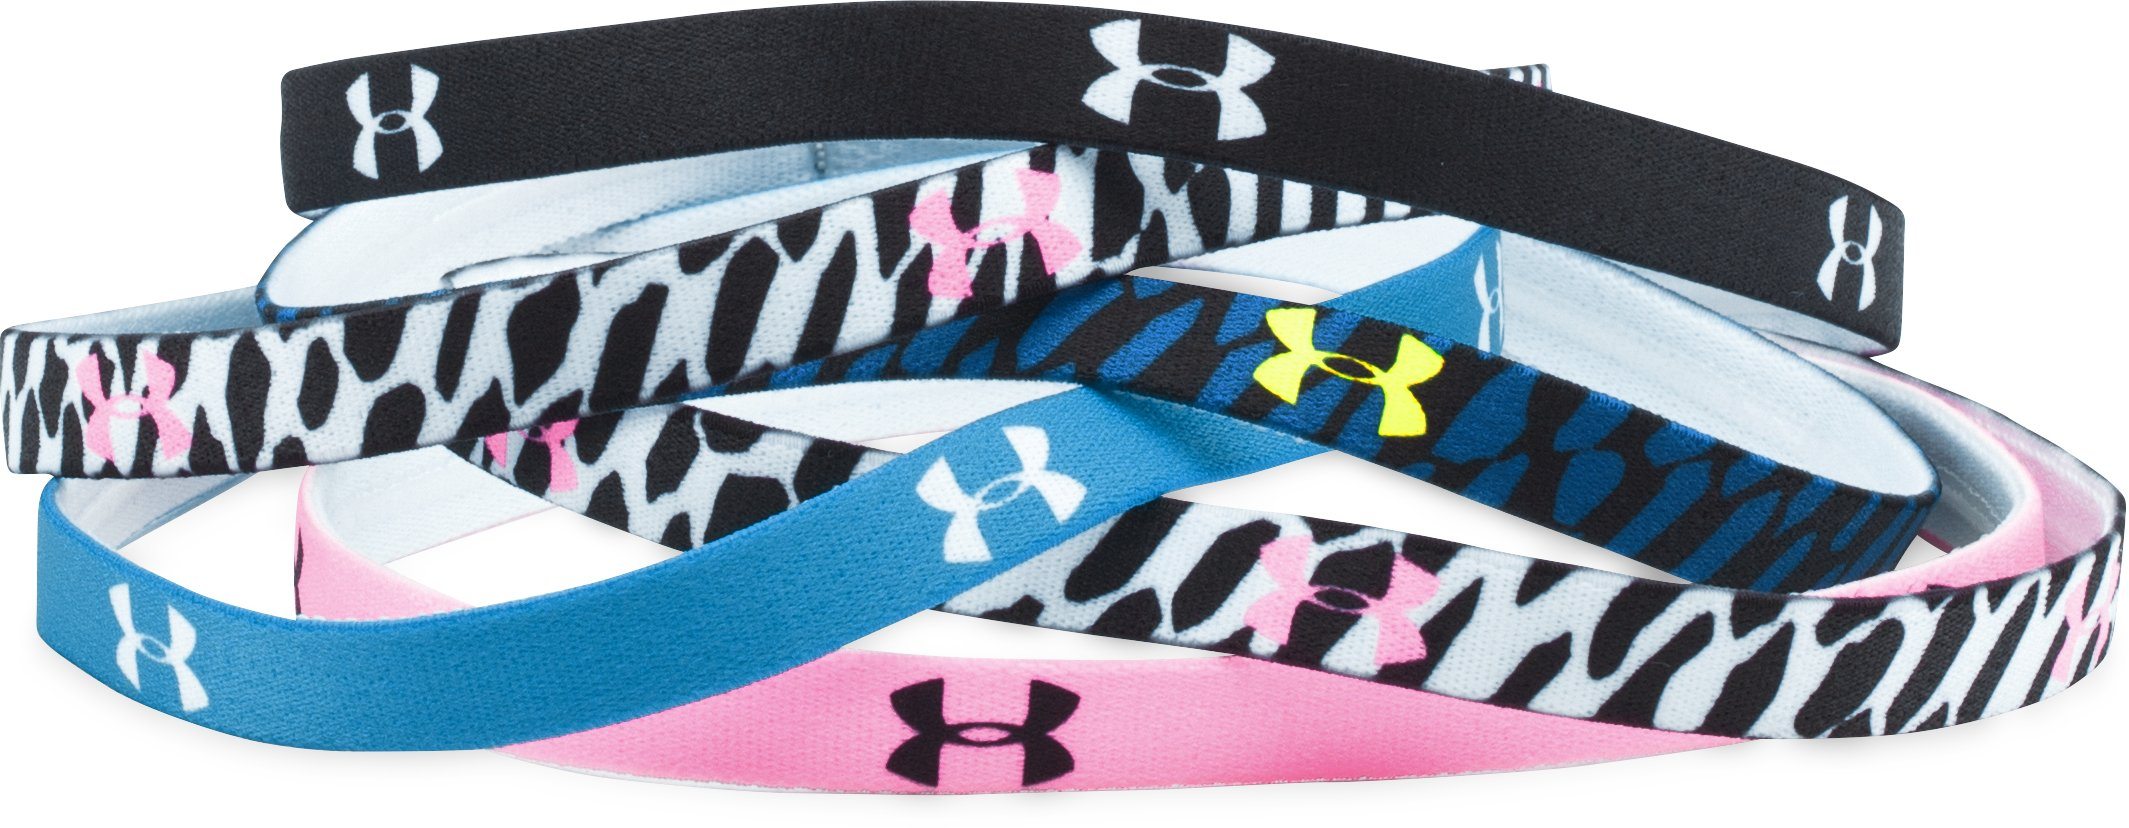 Women's UA Graphic Mini Headbands - 6 Pack, PINK CRAZE